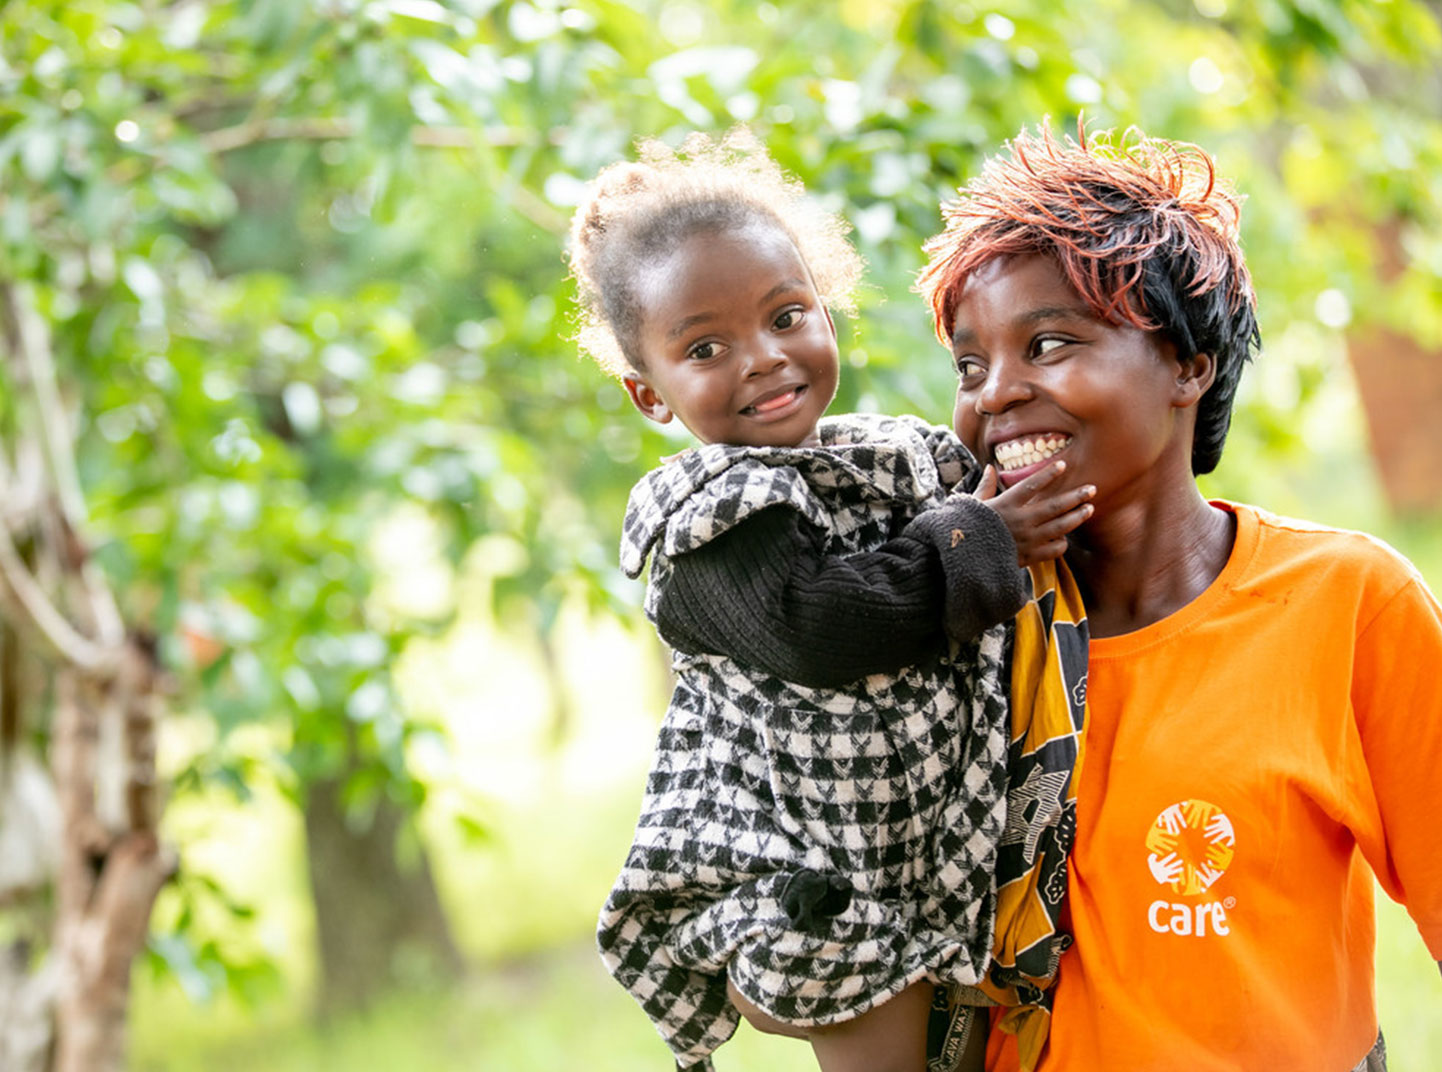 A CARE staffer wearing a bright orange CARE shirt smiles while holding a young girl wearing a black and white checked dress.